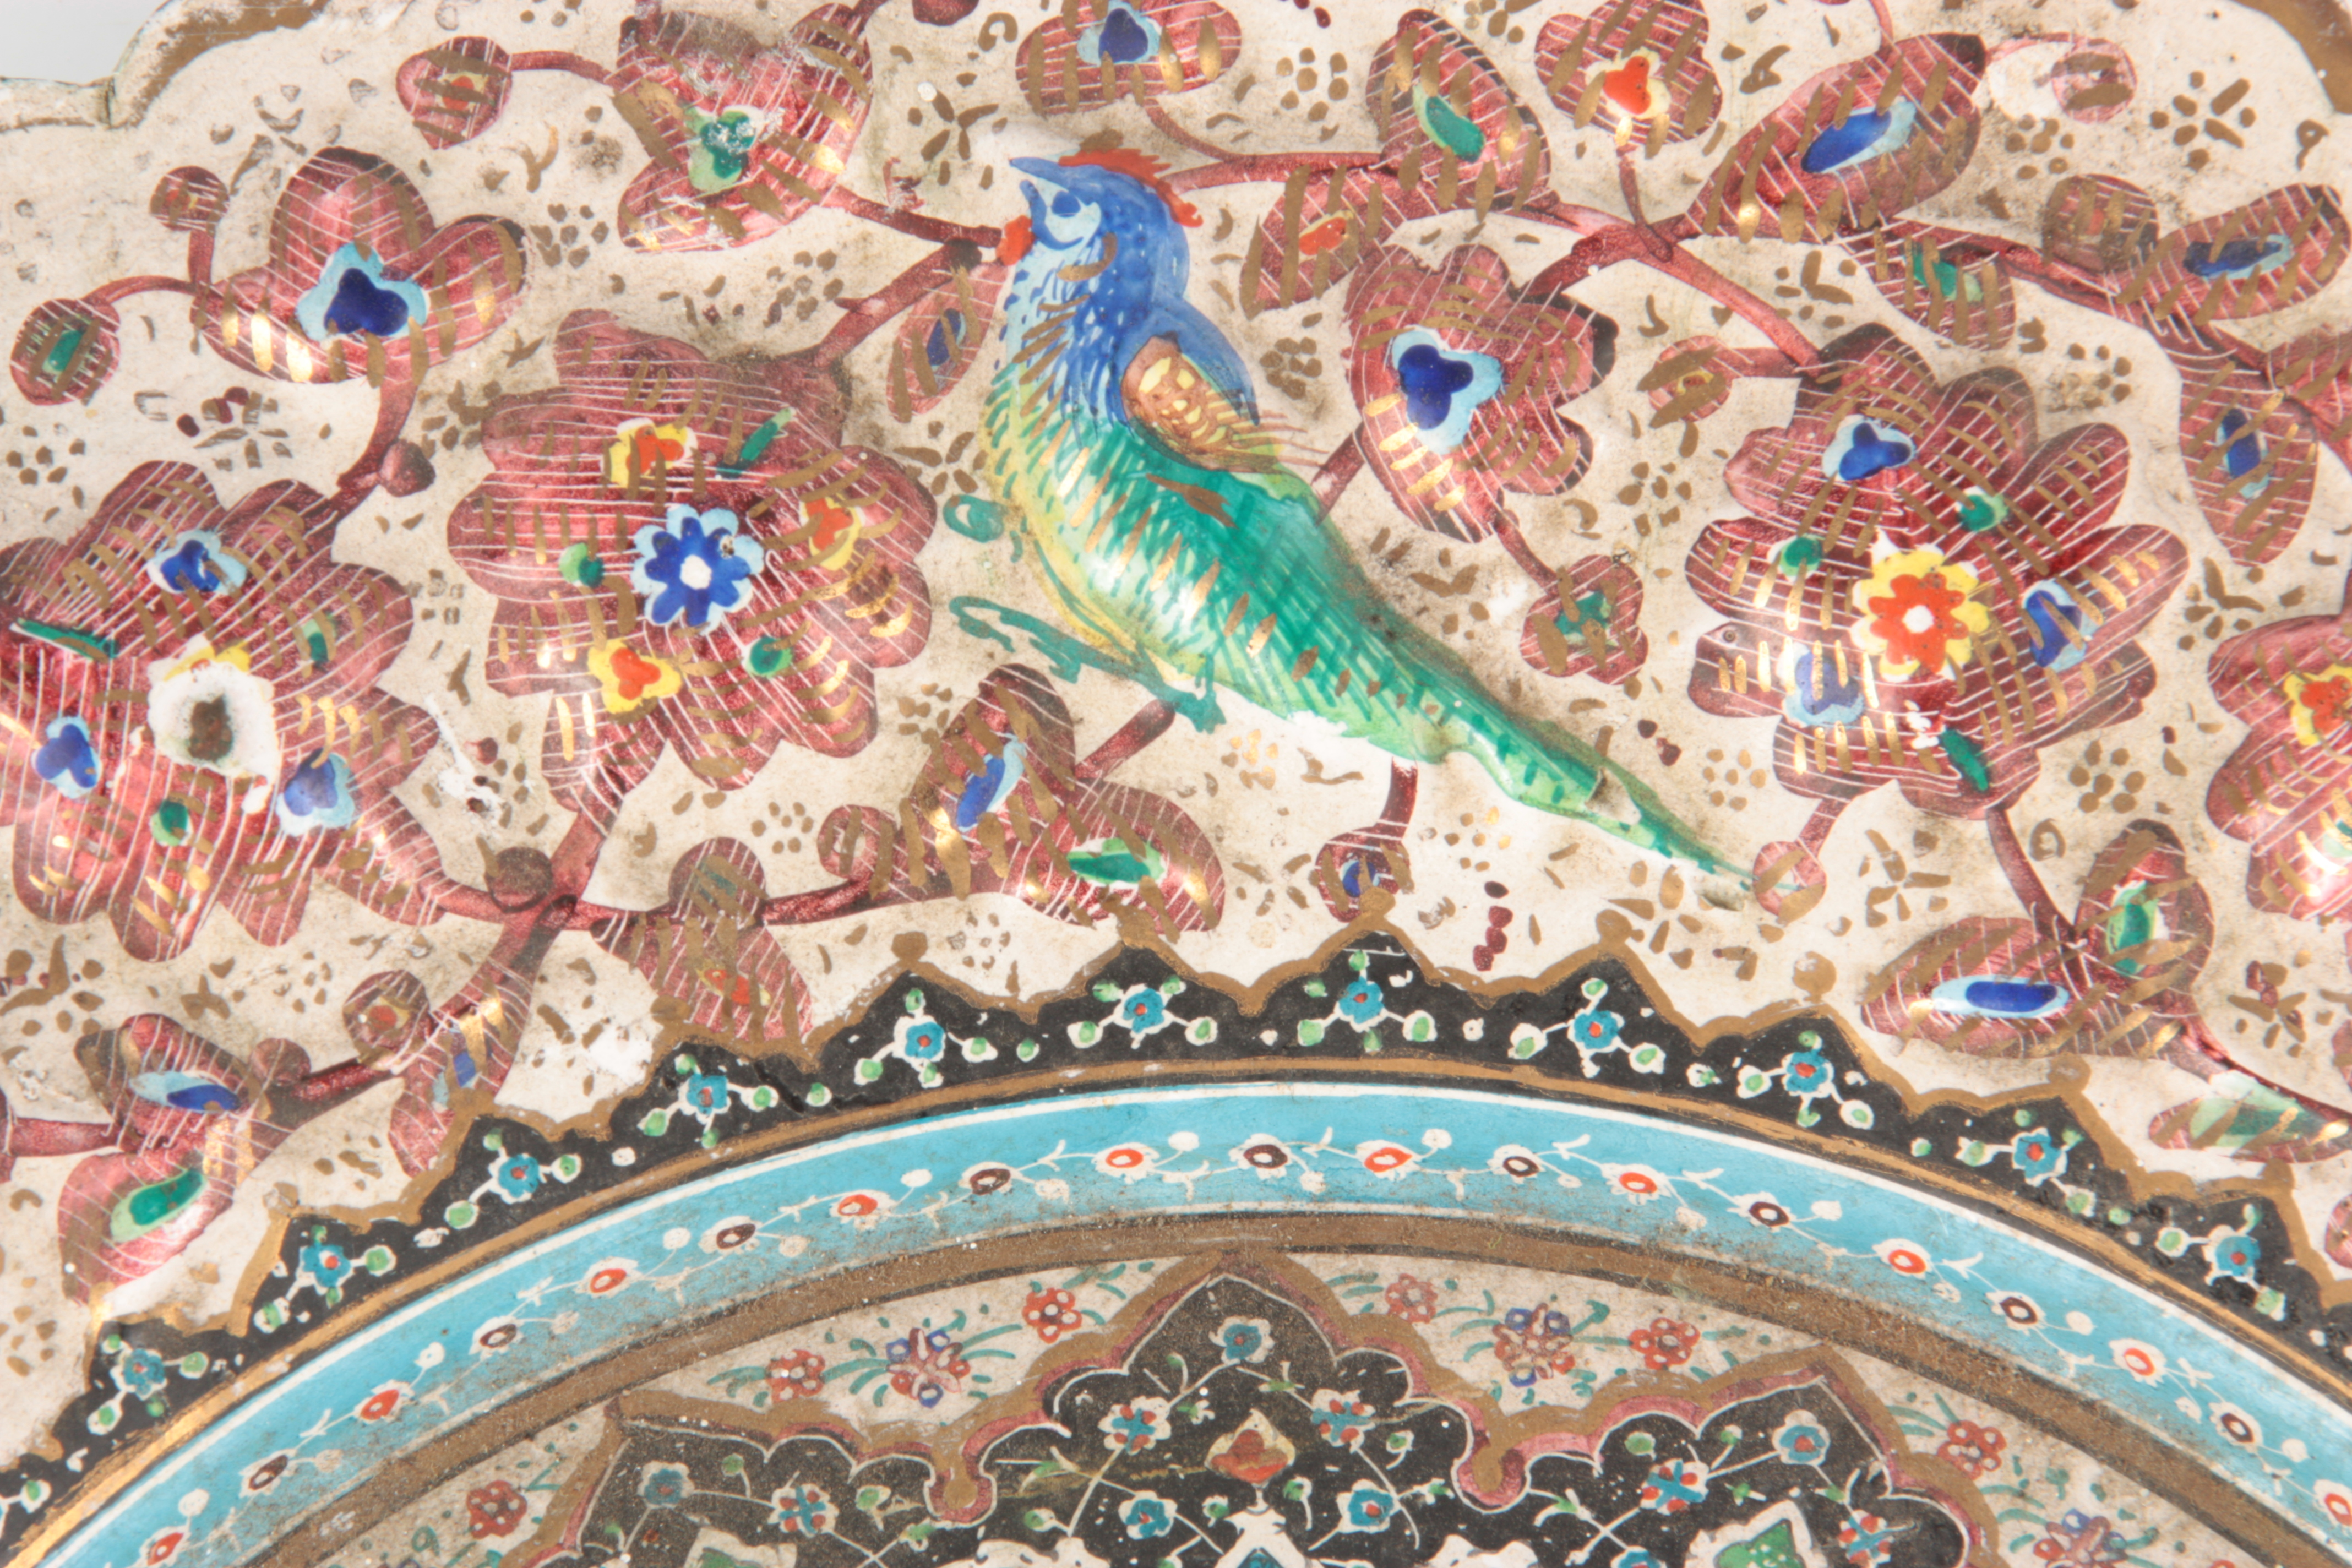 A 19TH CENTURY ISLAMIC ENAMEL PLATE finely decorated with a reliefwork border decorated with birds - Image 3 of 5